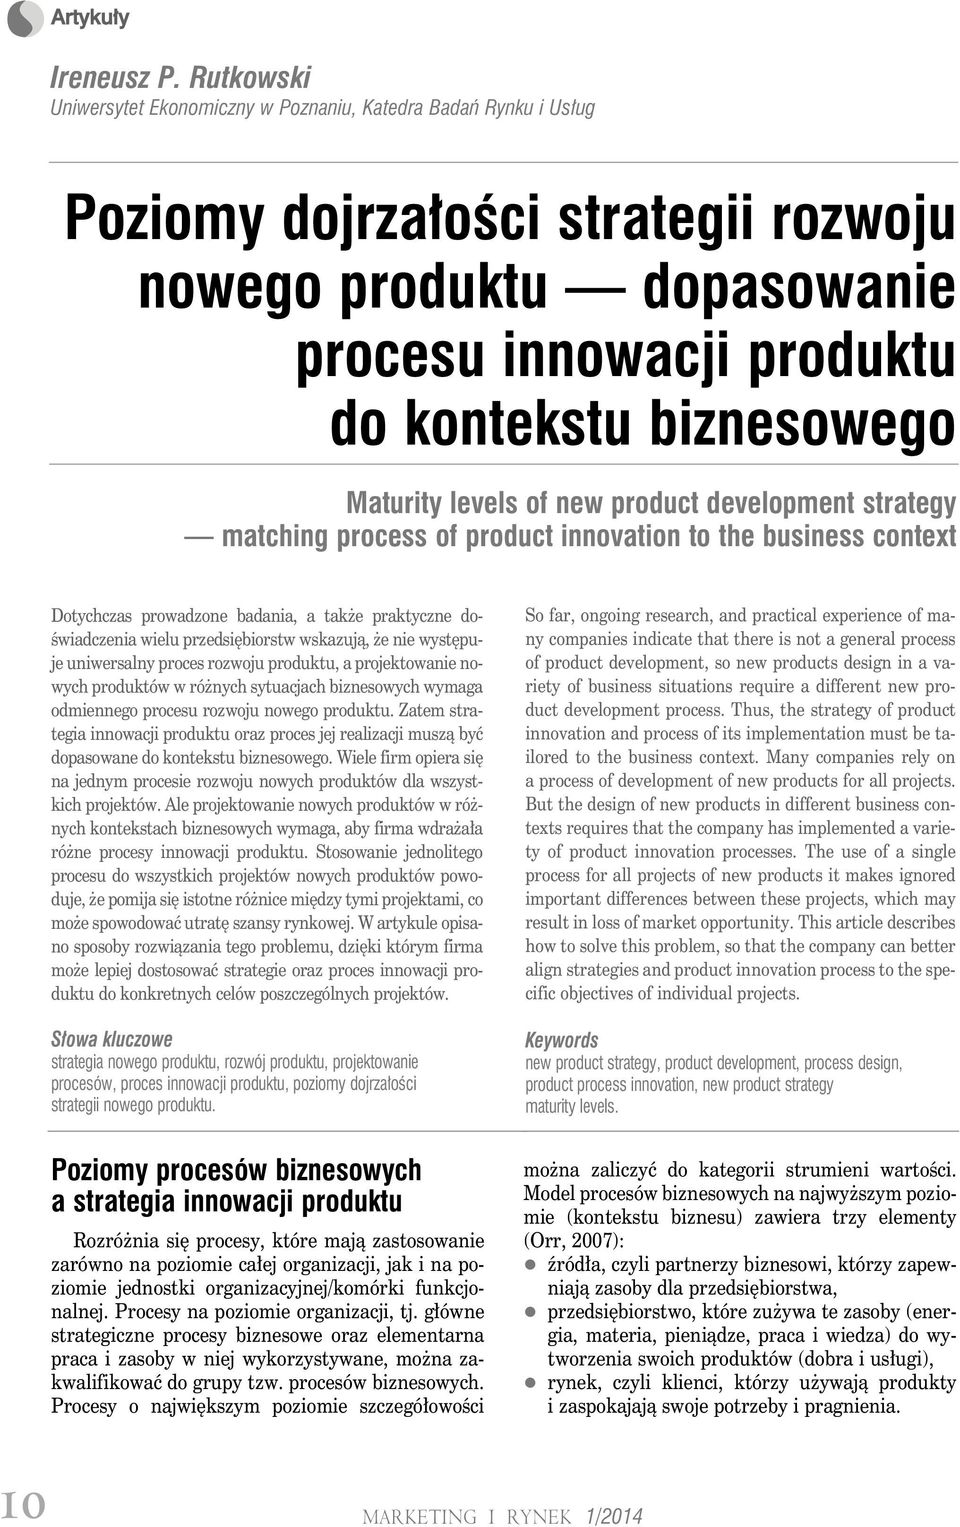 Maturity levels of new product development strategy matching process of product innovation to the business context Dotychczas prowadzone badania, a także praktyczne doświadczenia wielu